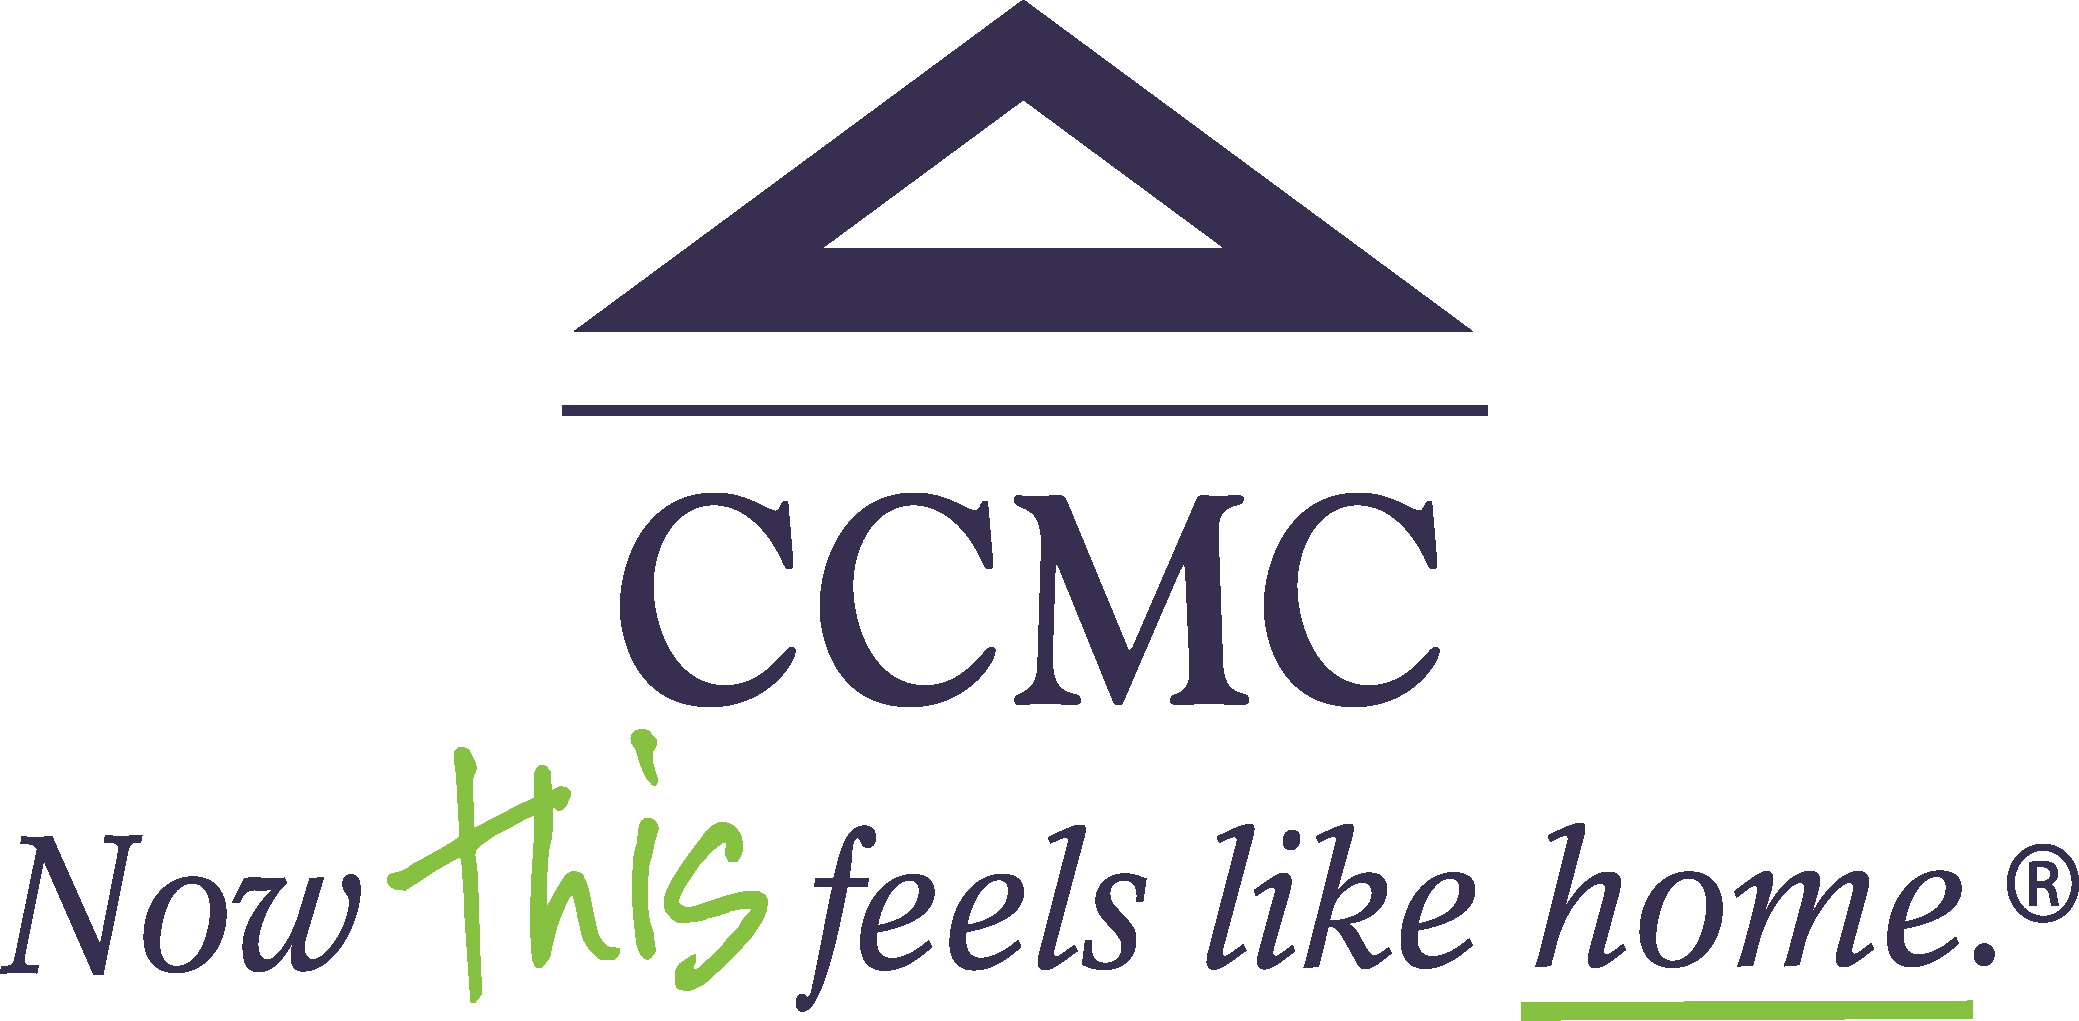 CCMC Logo Full Color Transparent Background